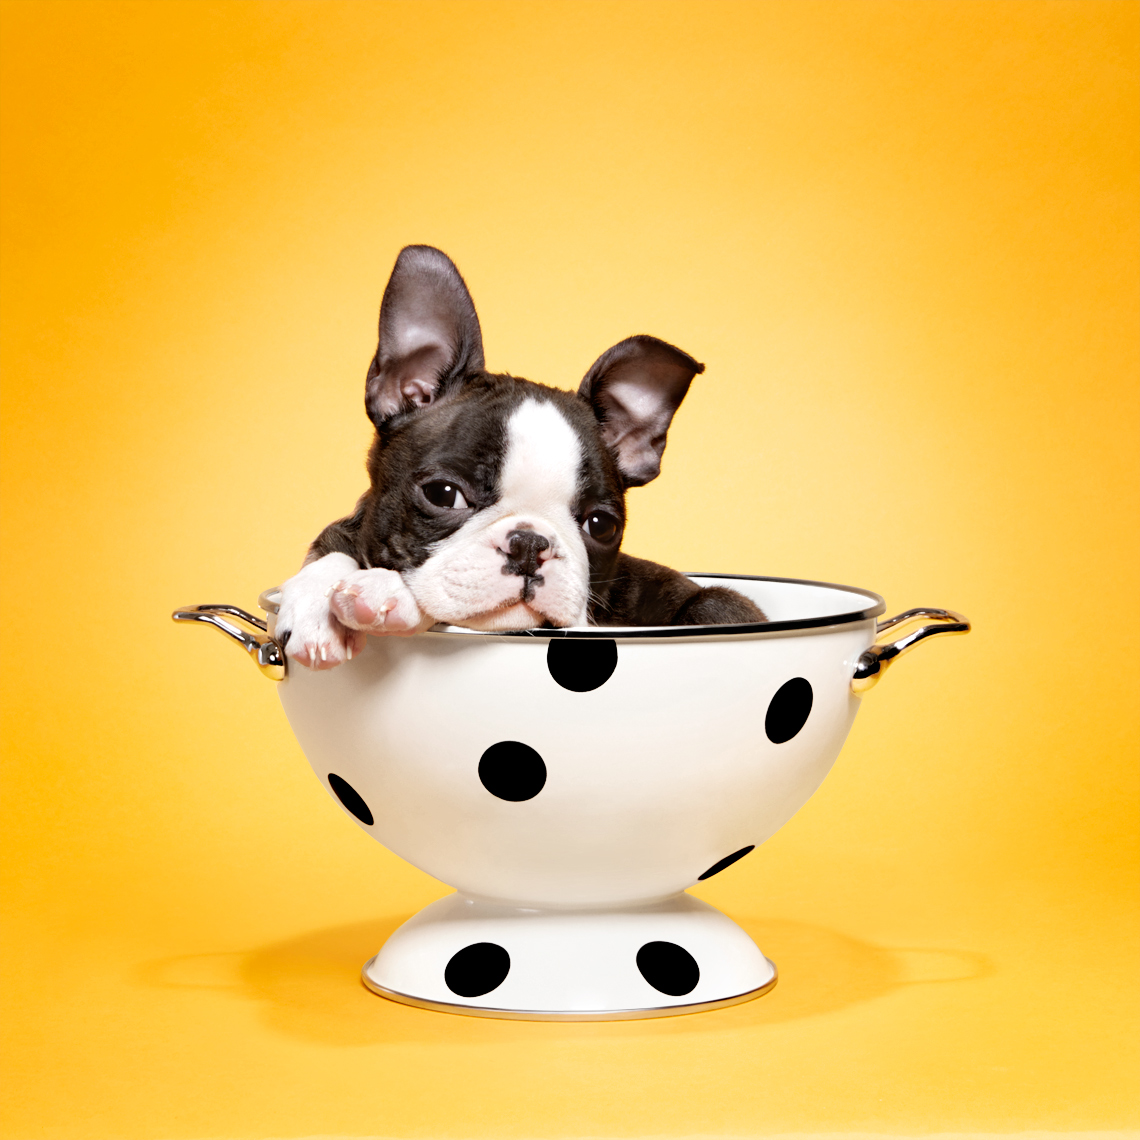 Boston Terrier puppy in a bowl